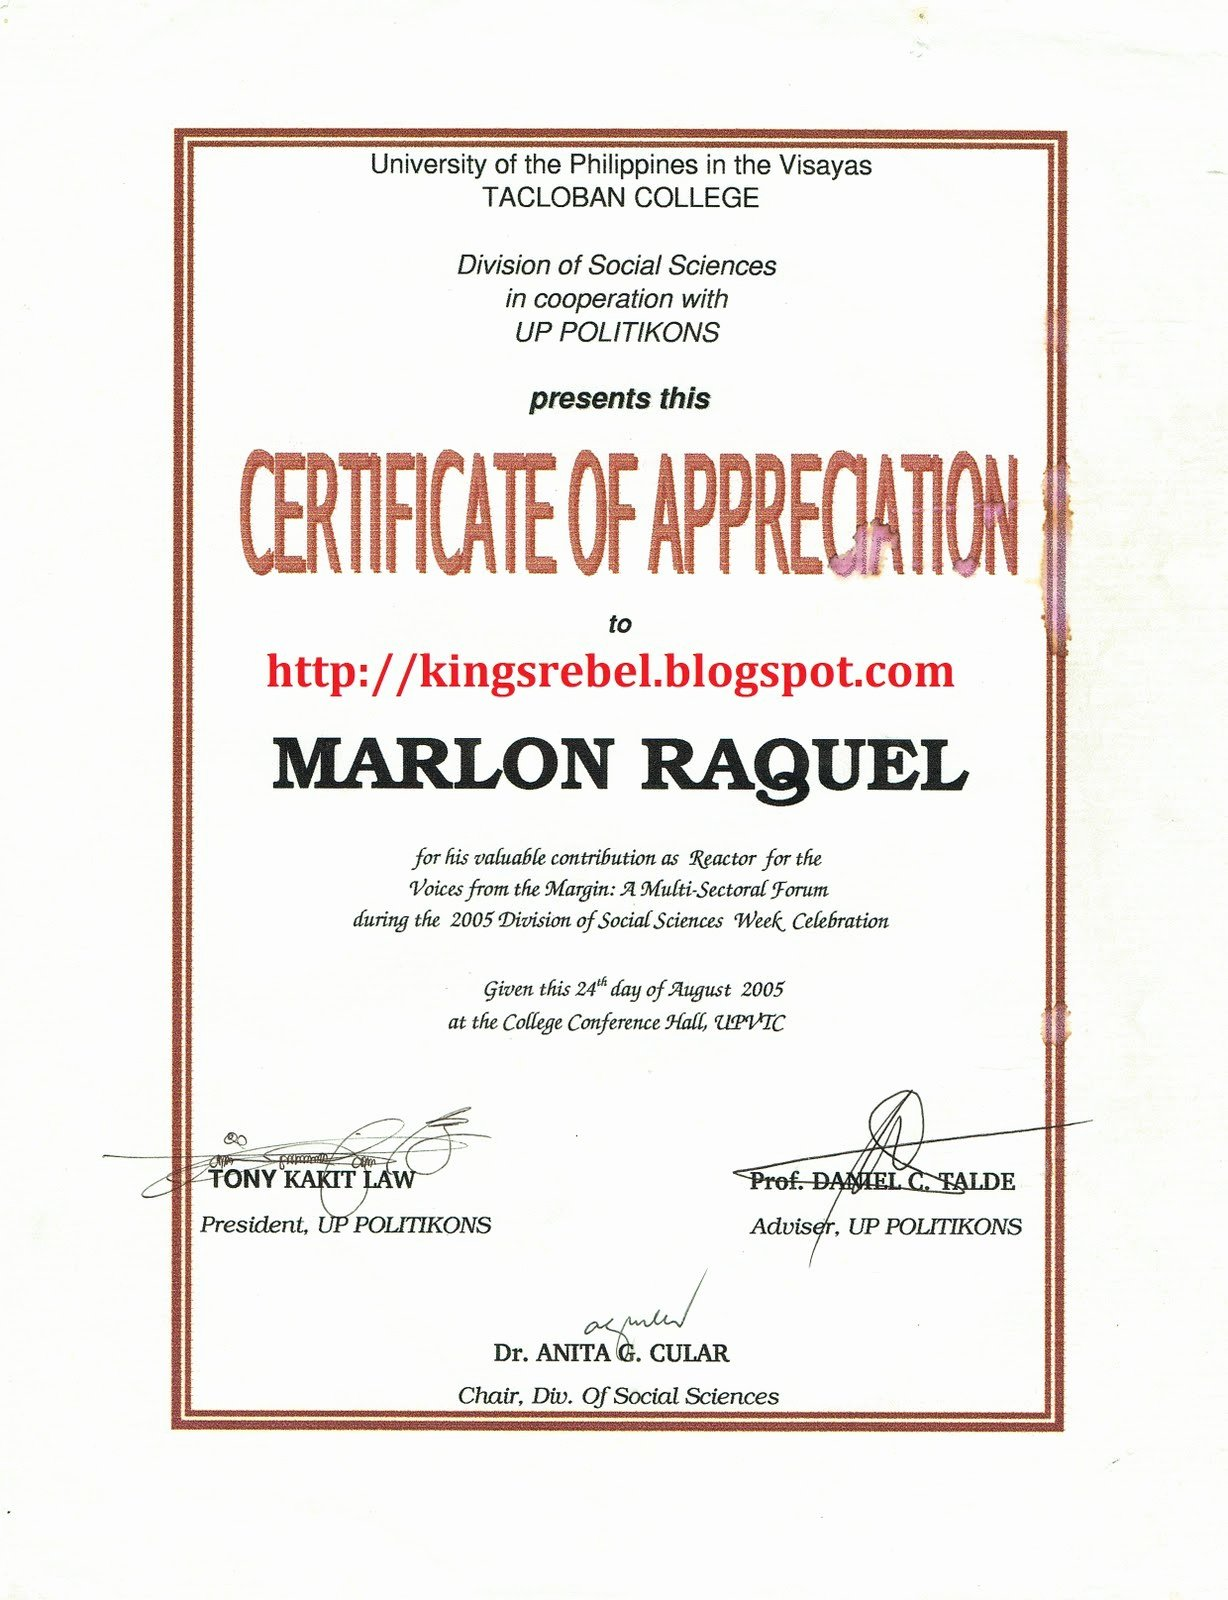 Biggest Loser Certificate Template Best Of Certificate Appreciation Template Guest Speaker